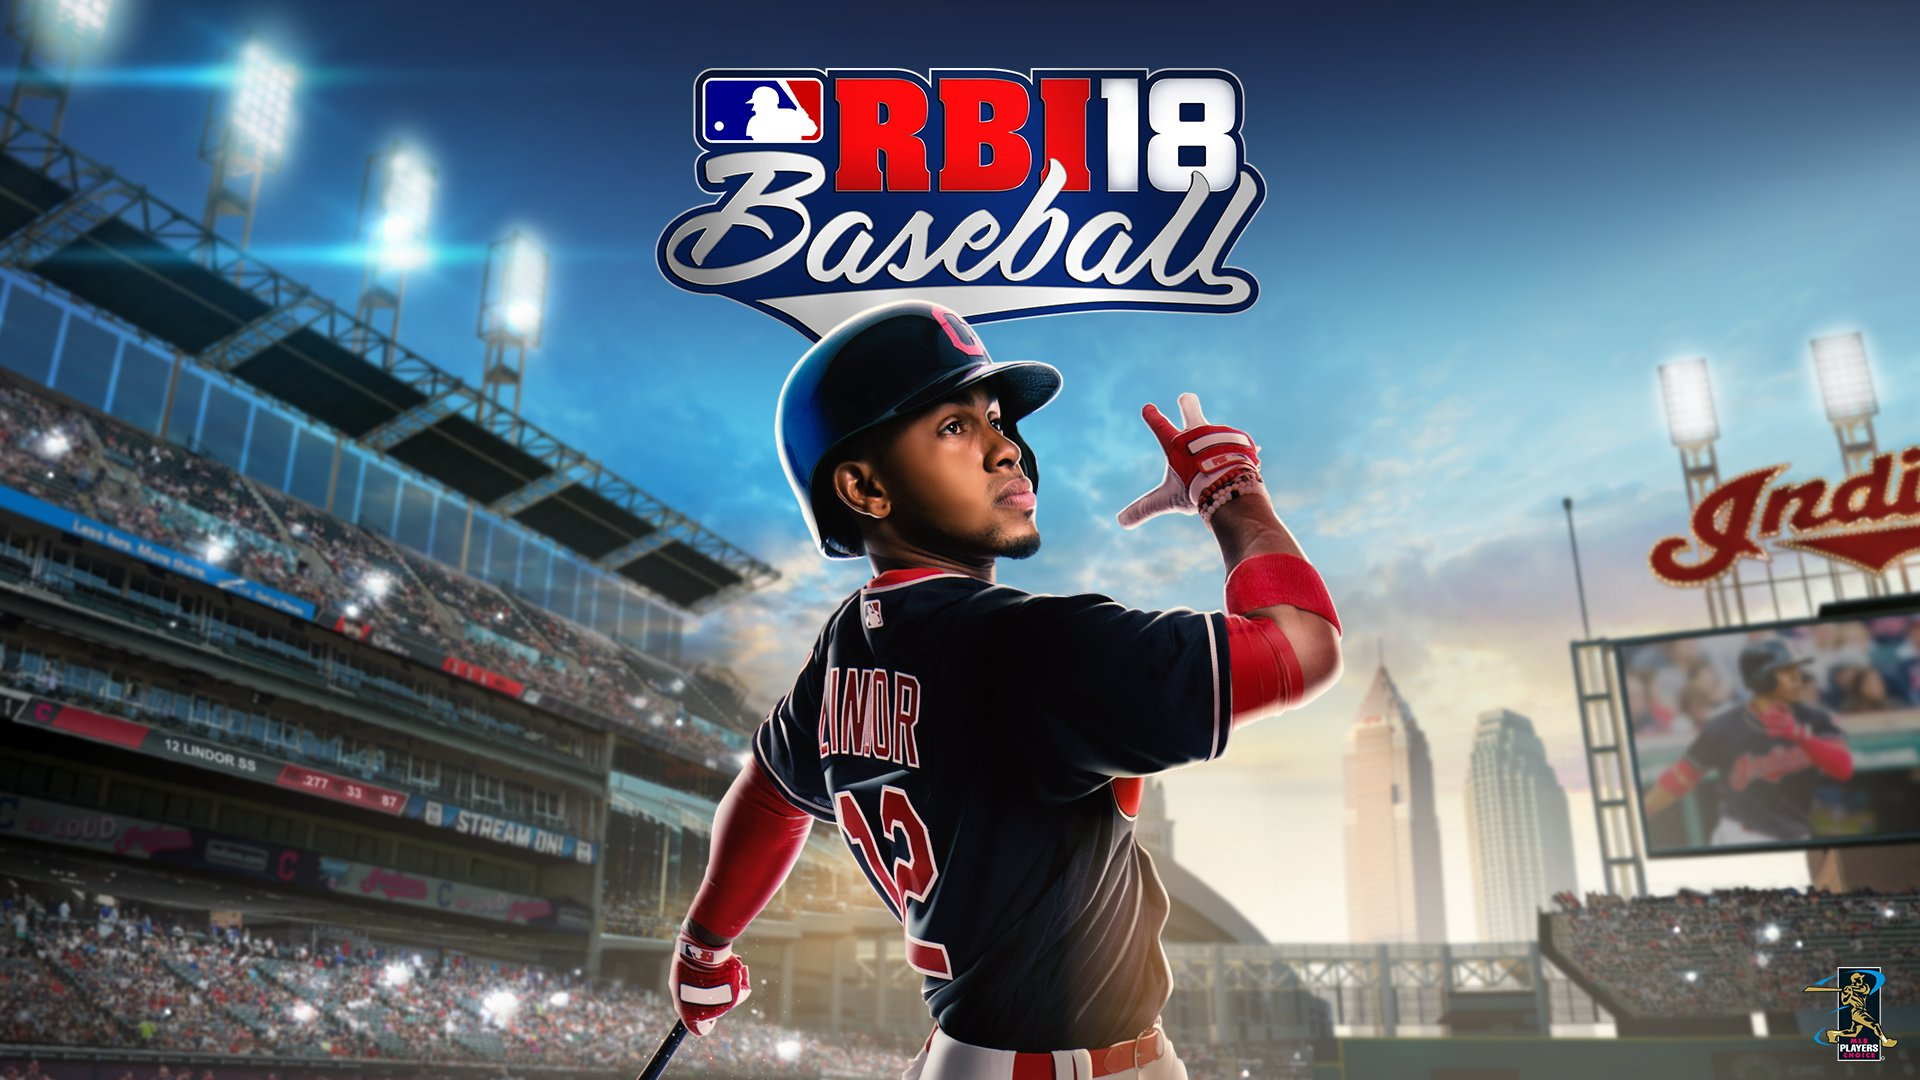 Your RBI Baseball 18 cover athlete:  @Lindor12BC! https://t.co/A8H6XnhaiV